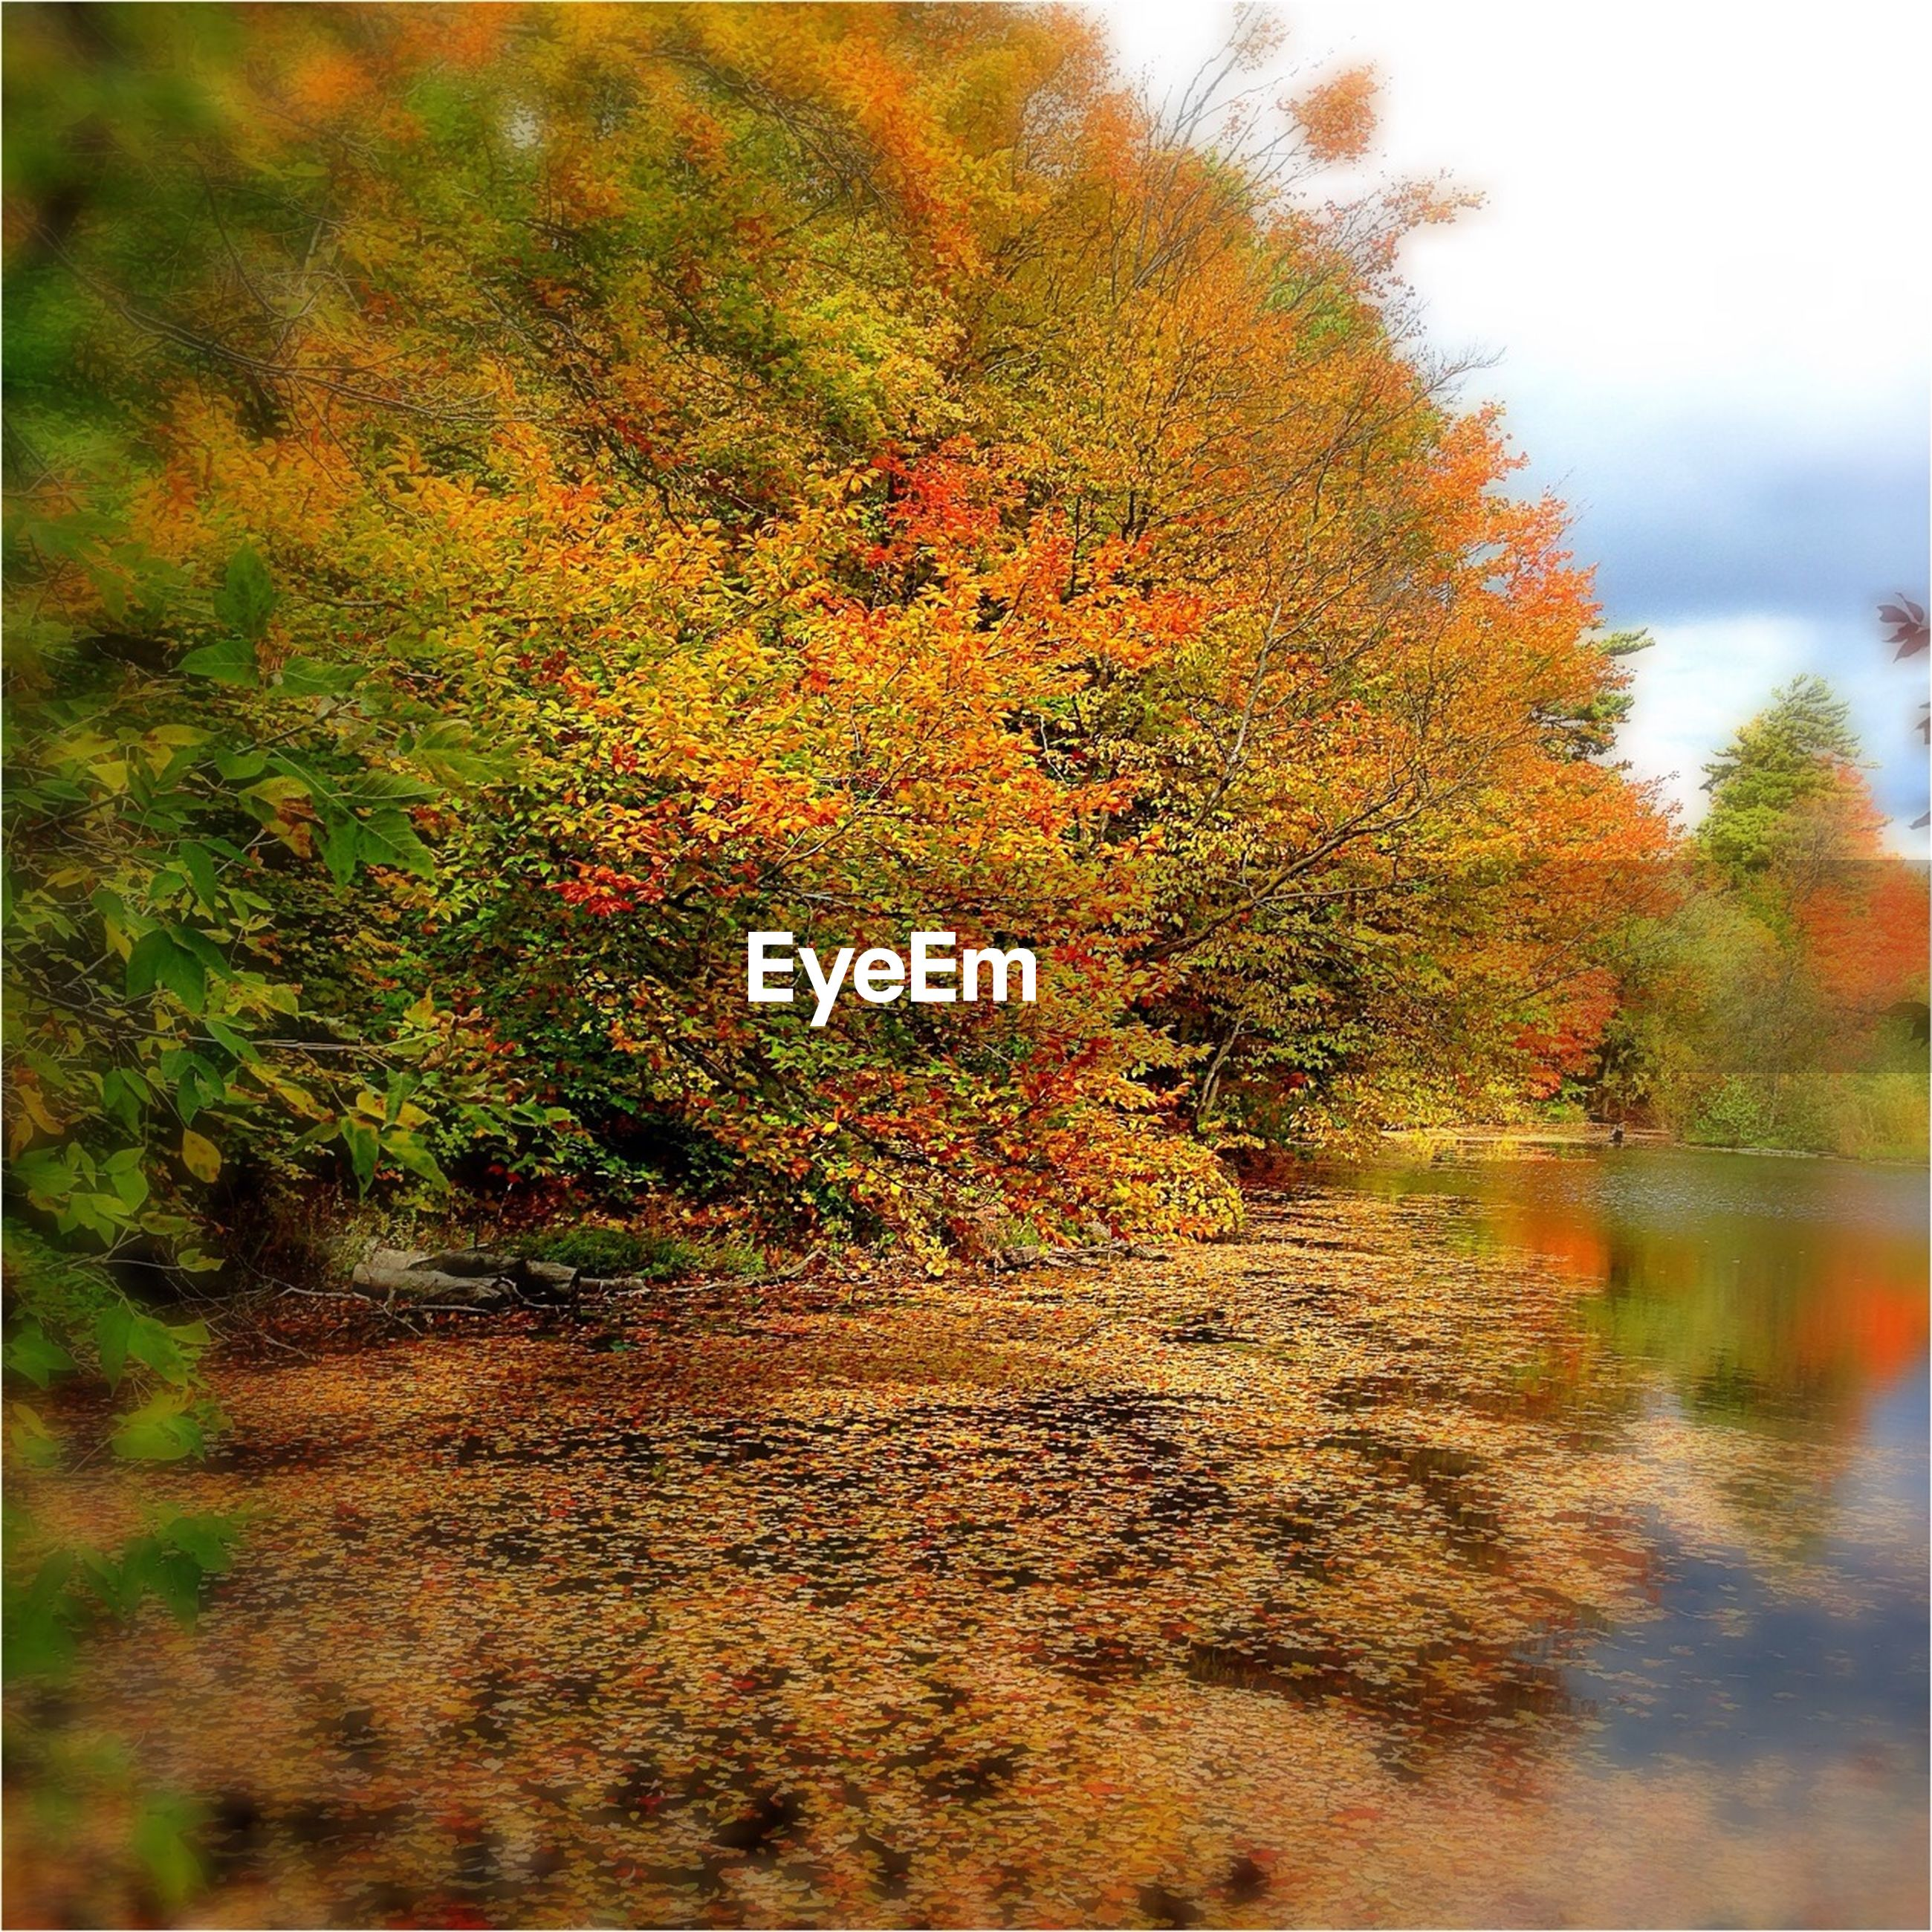 tree, autumn, change, growth, nature, season, tranquility, beauty in nature, tranquil scene, scenics, orange color, leaf, branch, water, plant, selective focus, day, outdoors, idyllic, no people